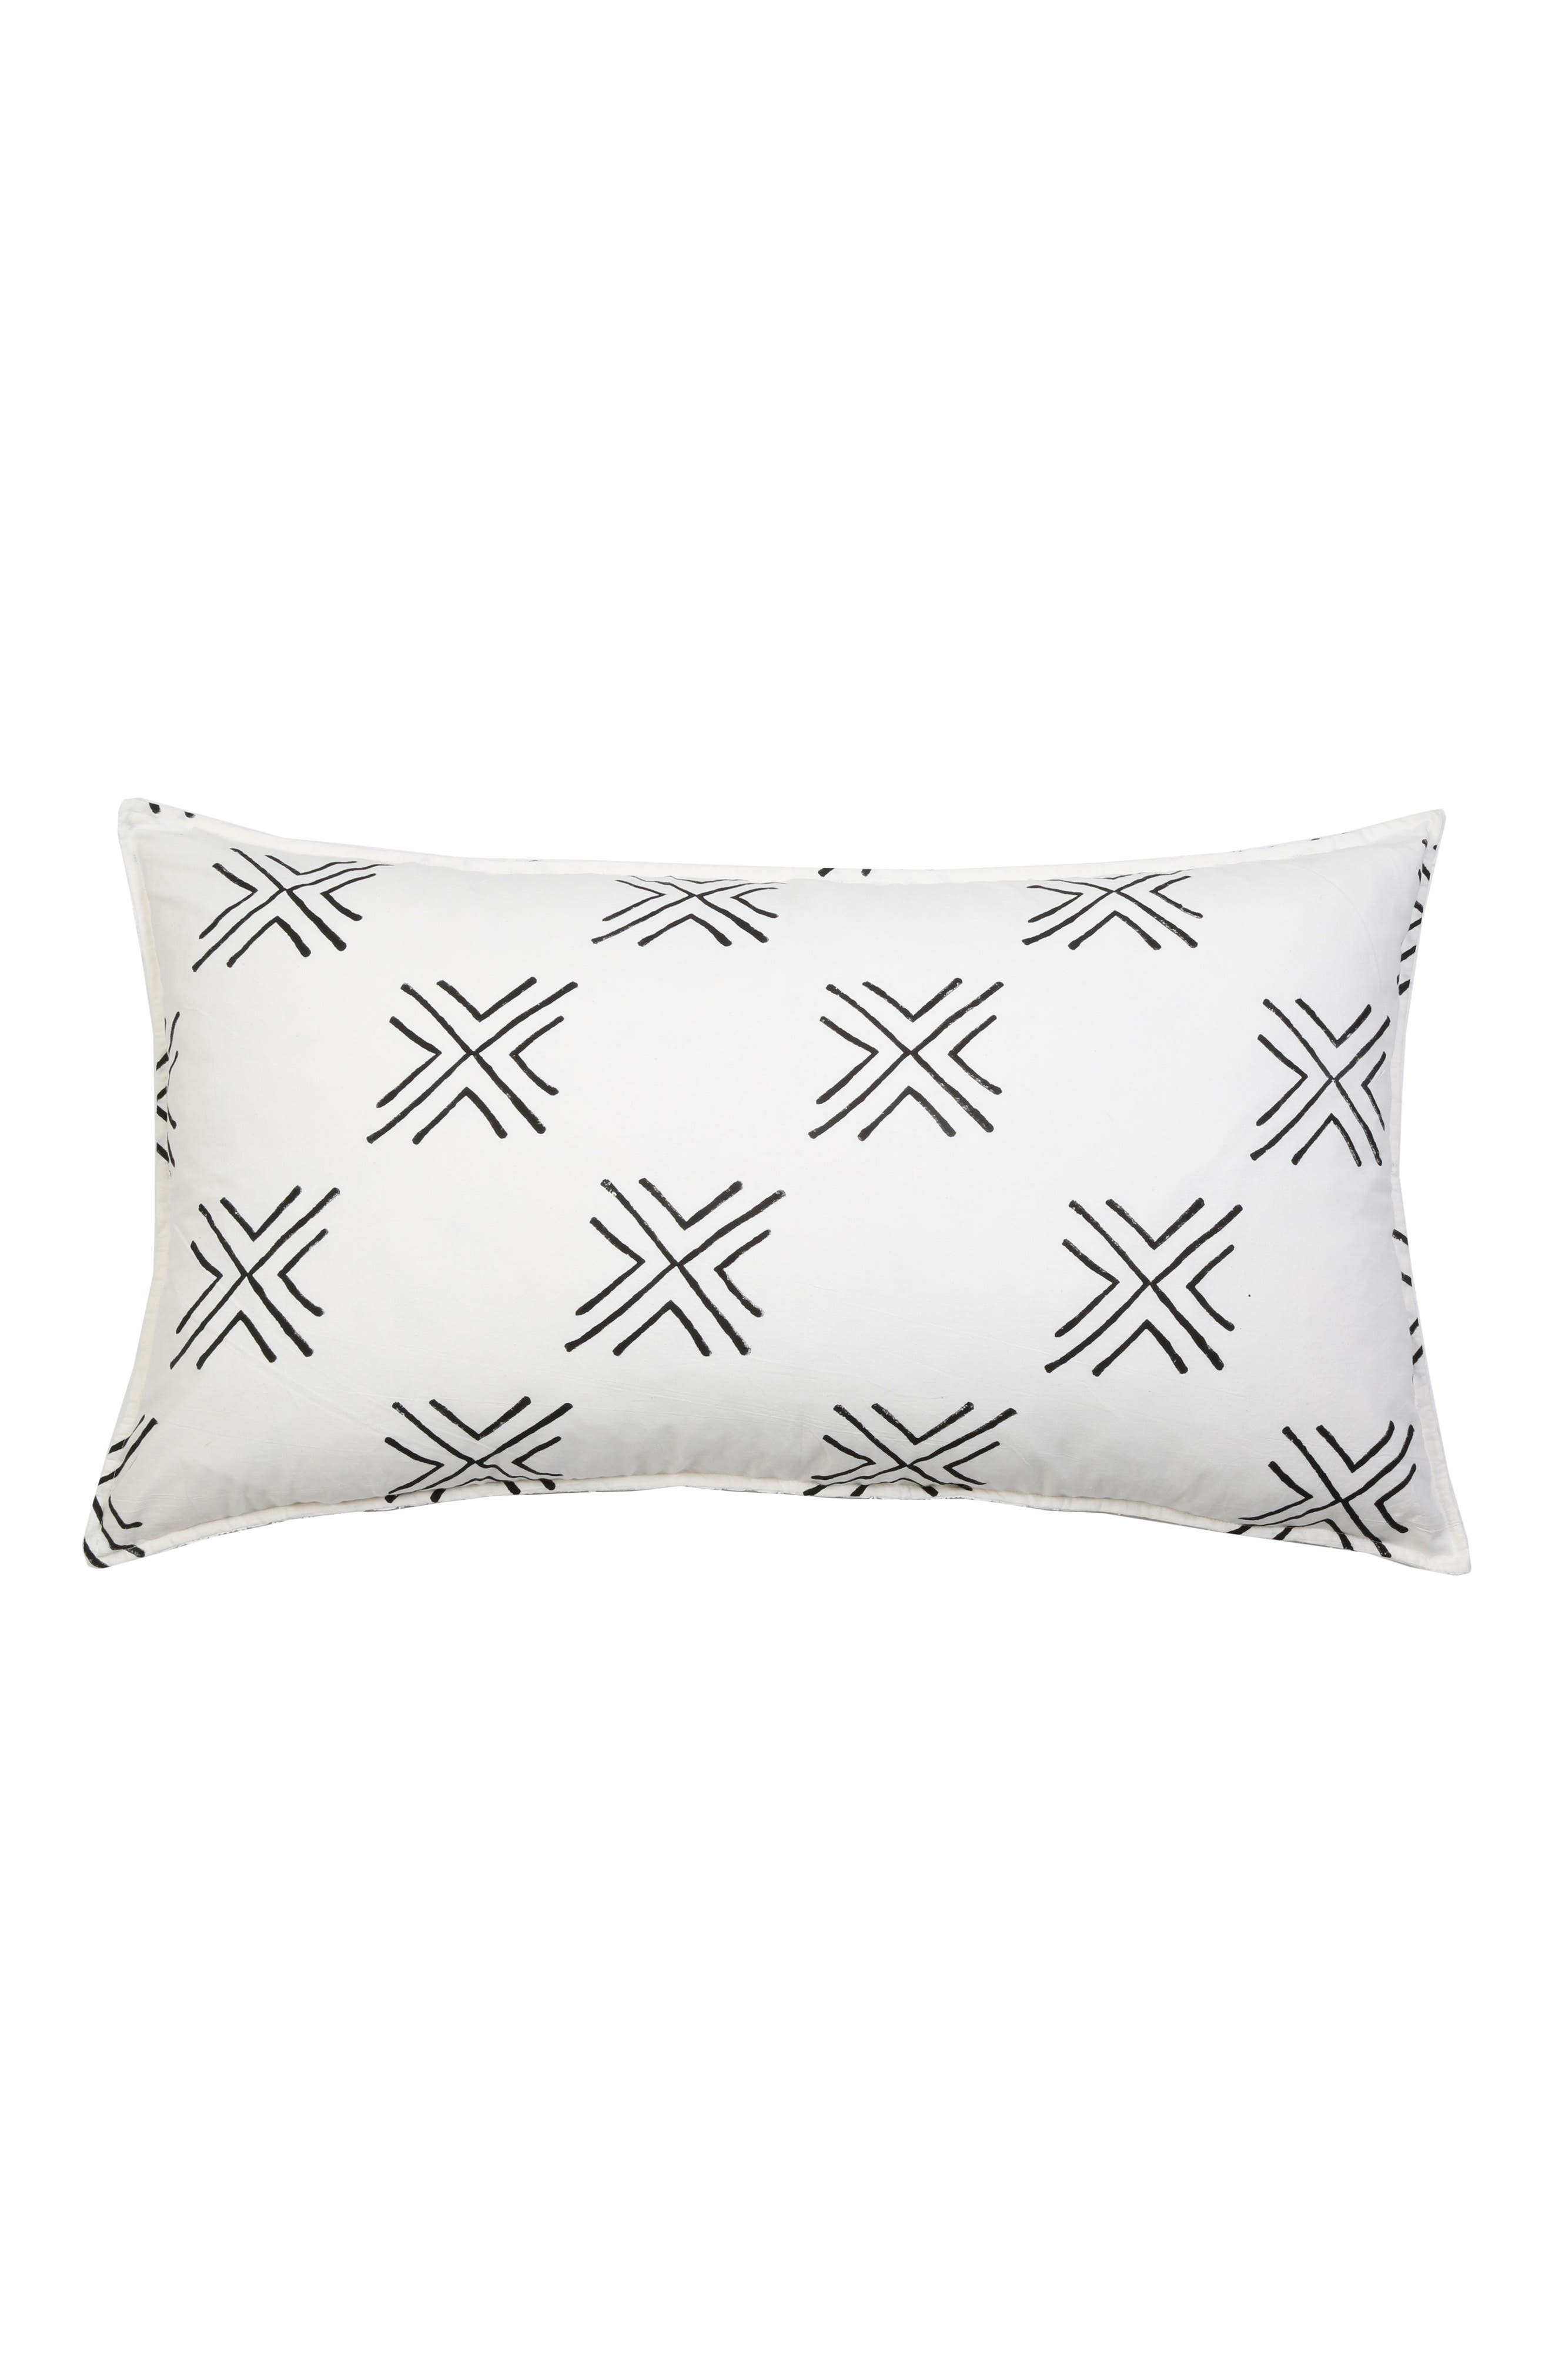 Alternate Image 1 Selected - Pom Pom at Home Arrow Accent Pillow